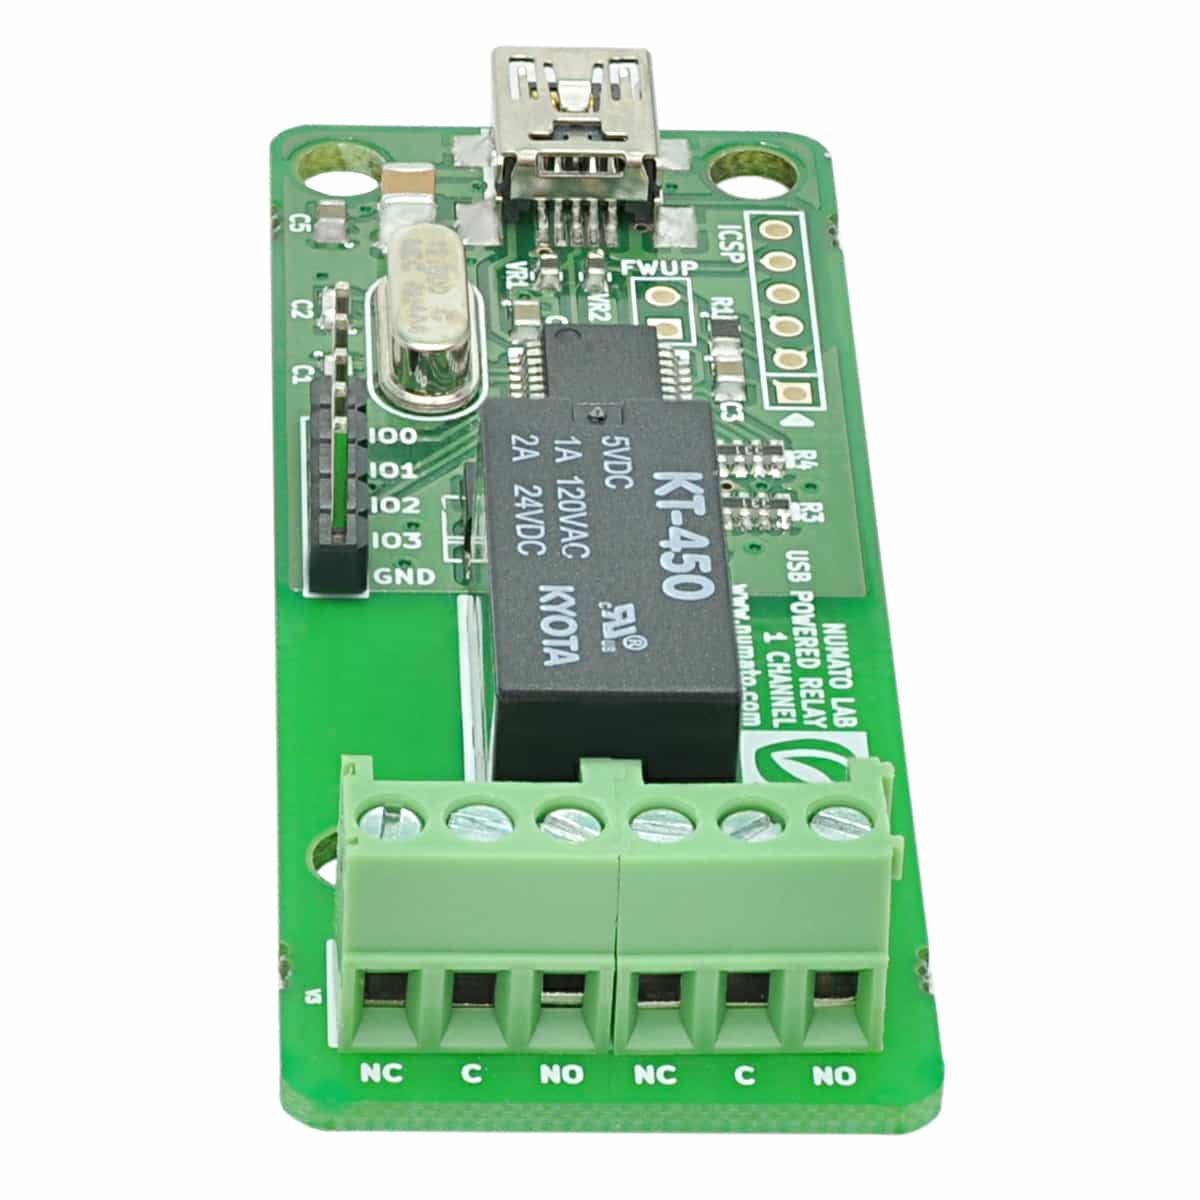 1 Channel Usb Powered Relay Module With Gpio Numato Lab Next The Four Outputs From Remote Control Inbuilt Relays